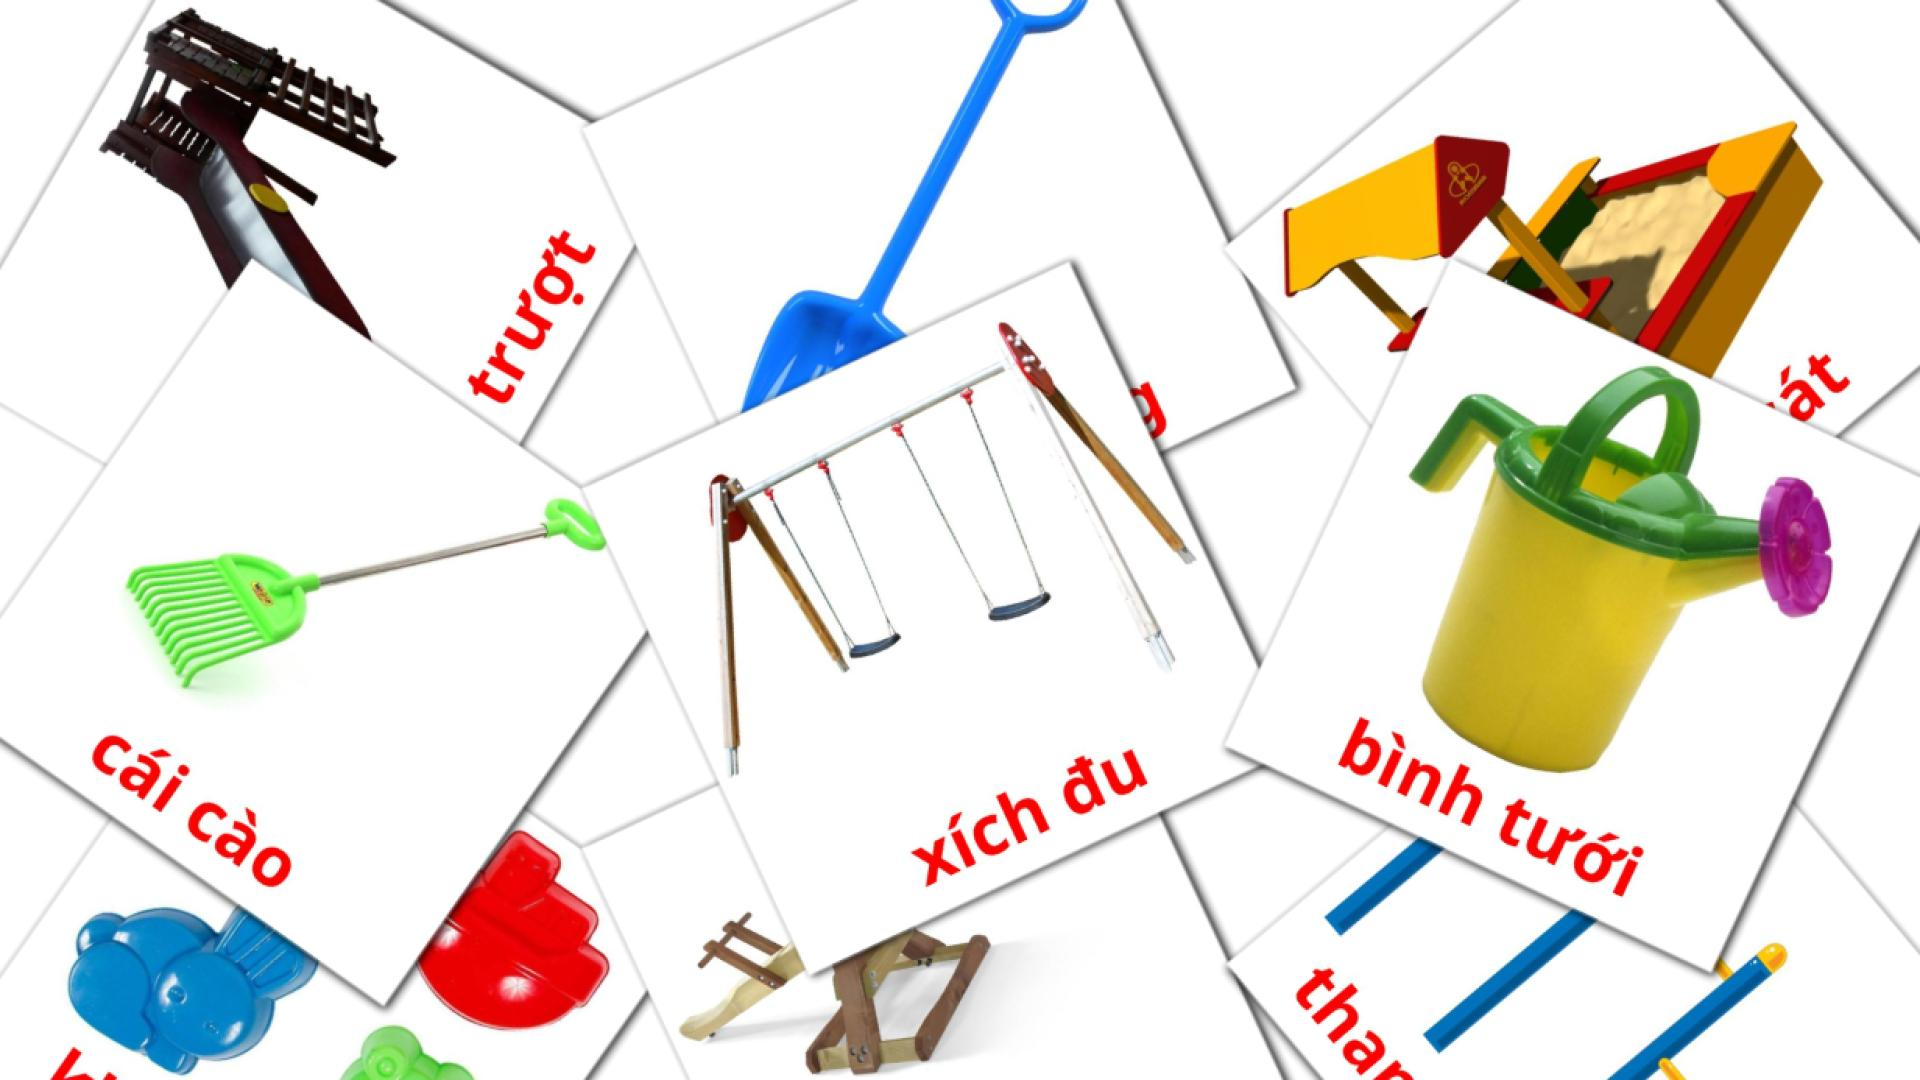 Playground flashcards